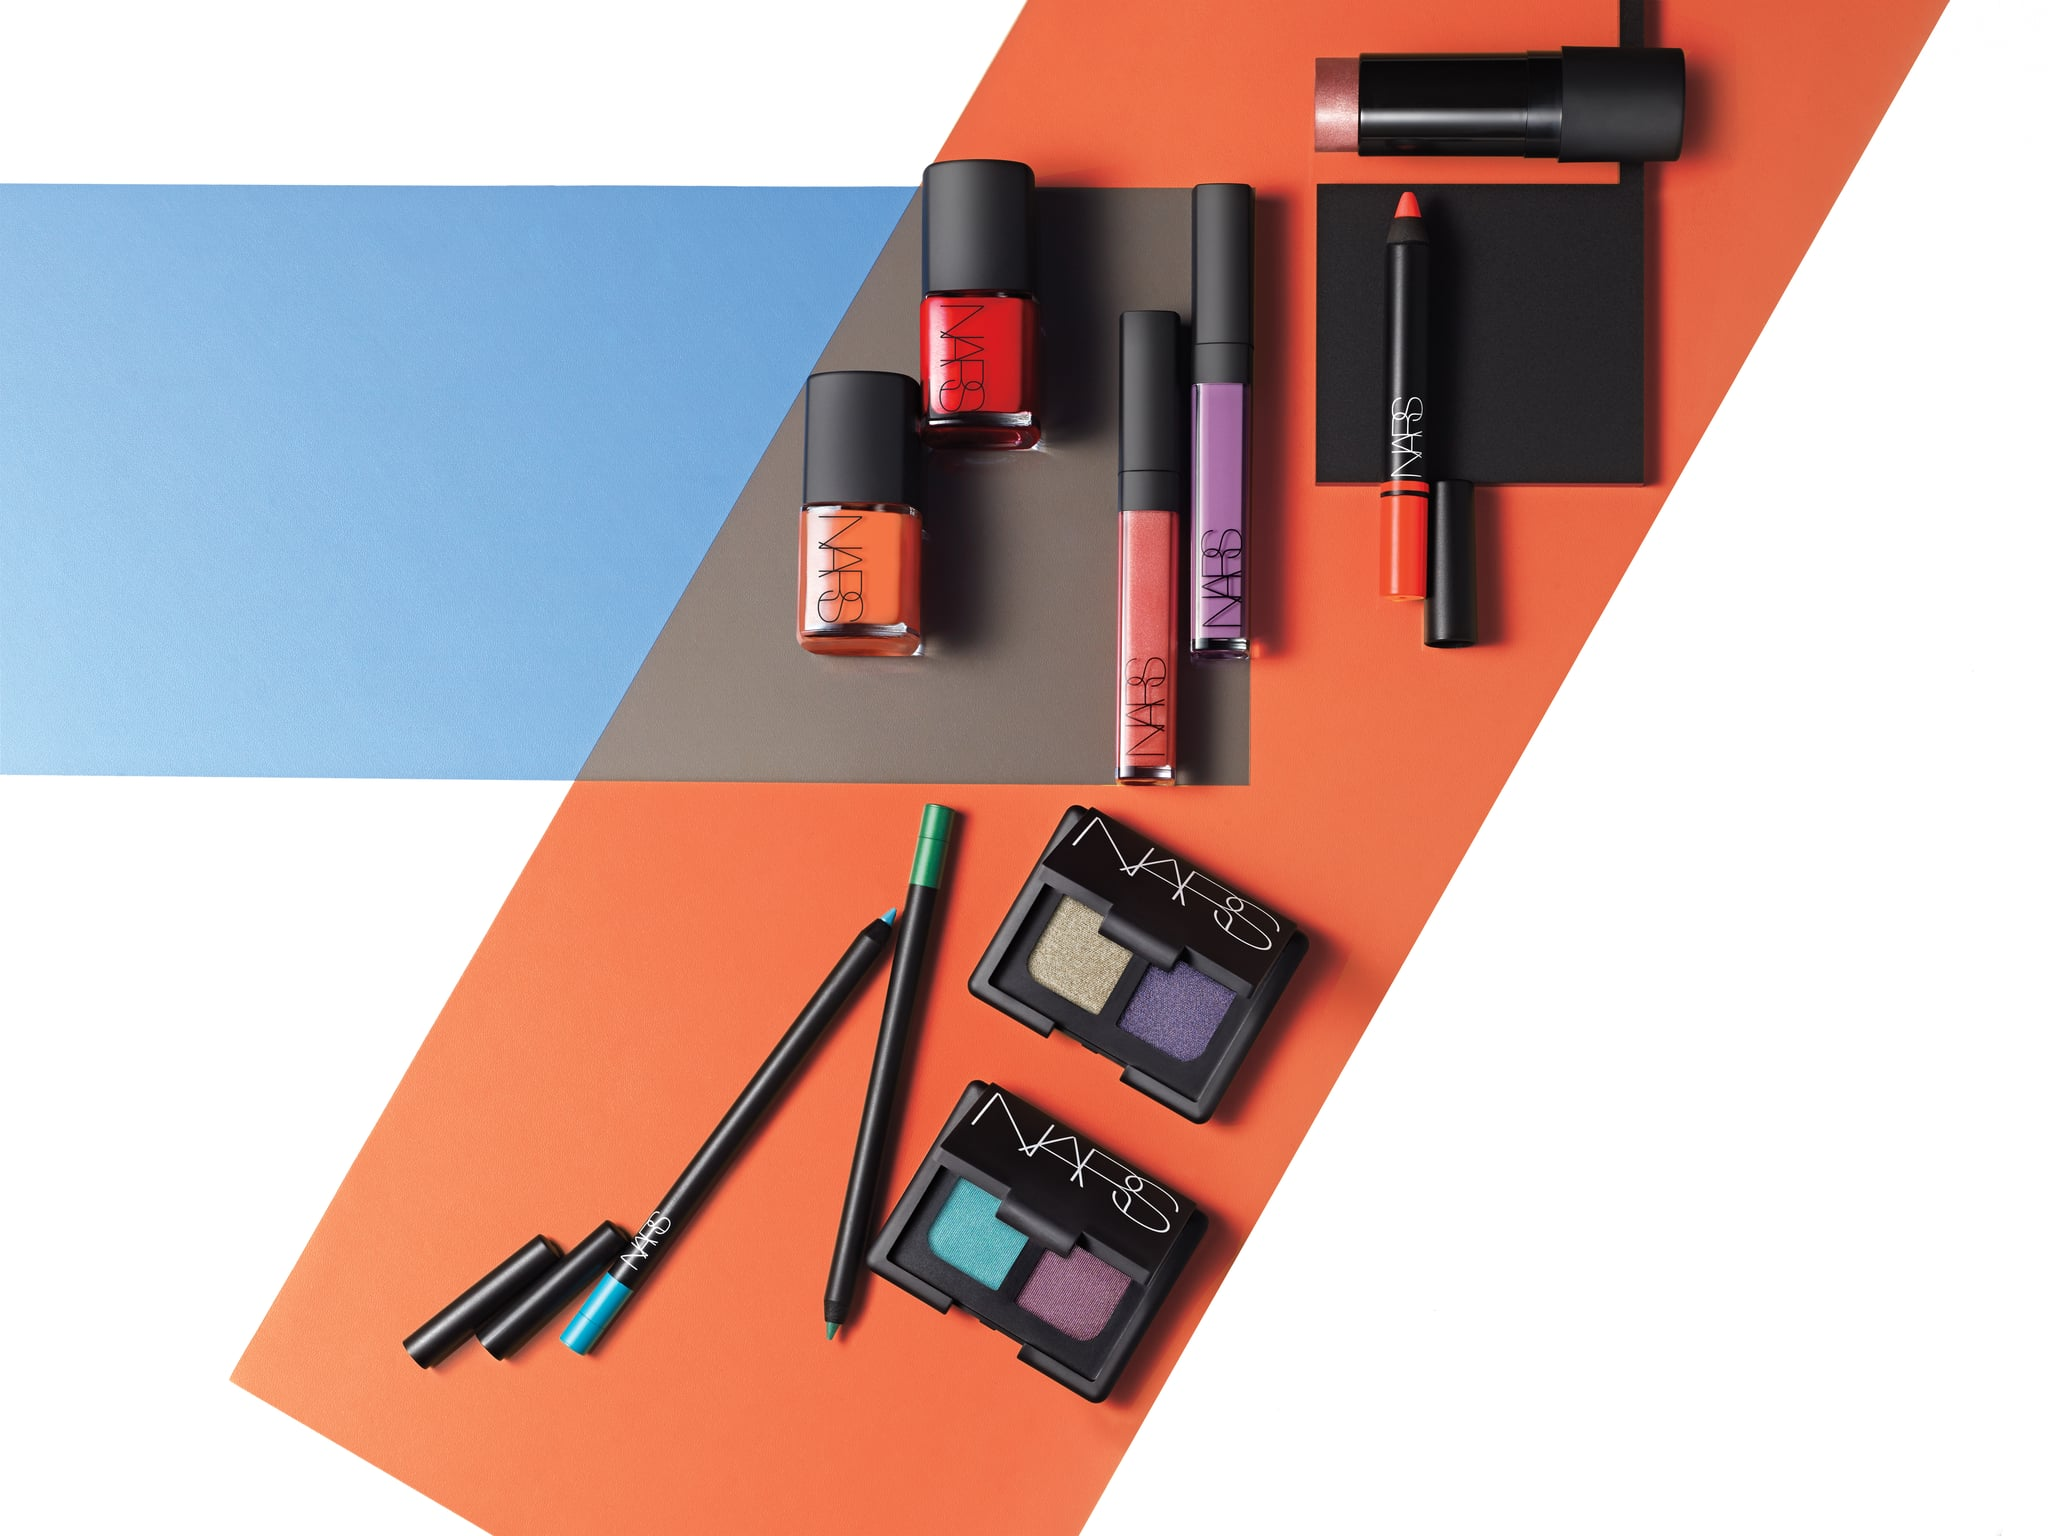 The Nars Spring 2014 Collection Is a Caribbean Dream